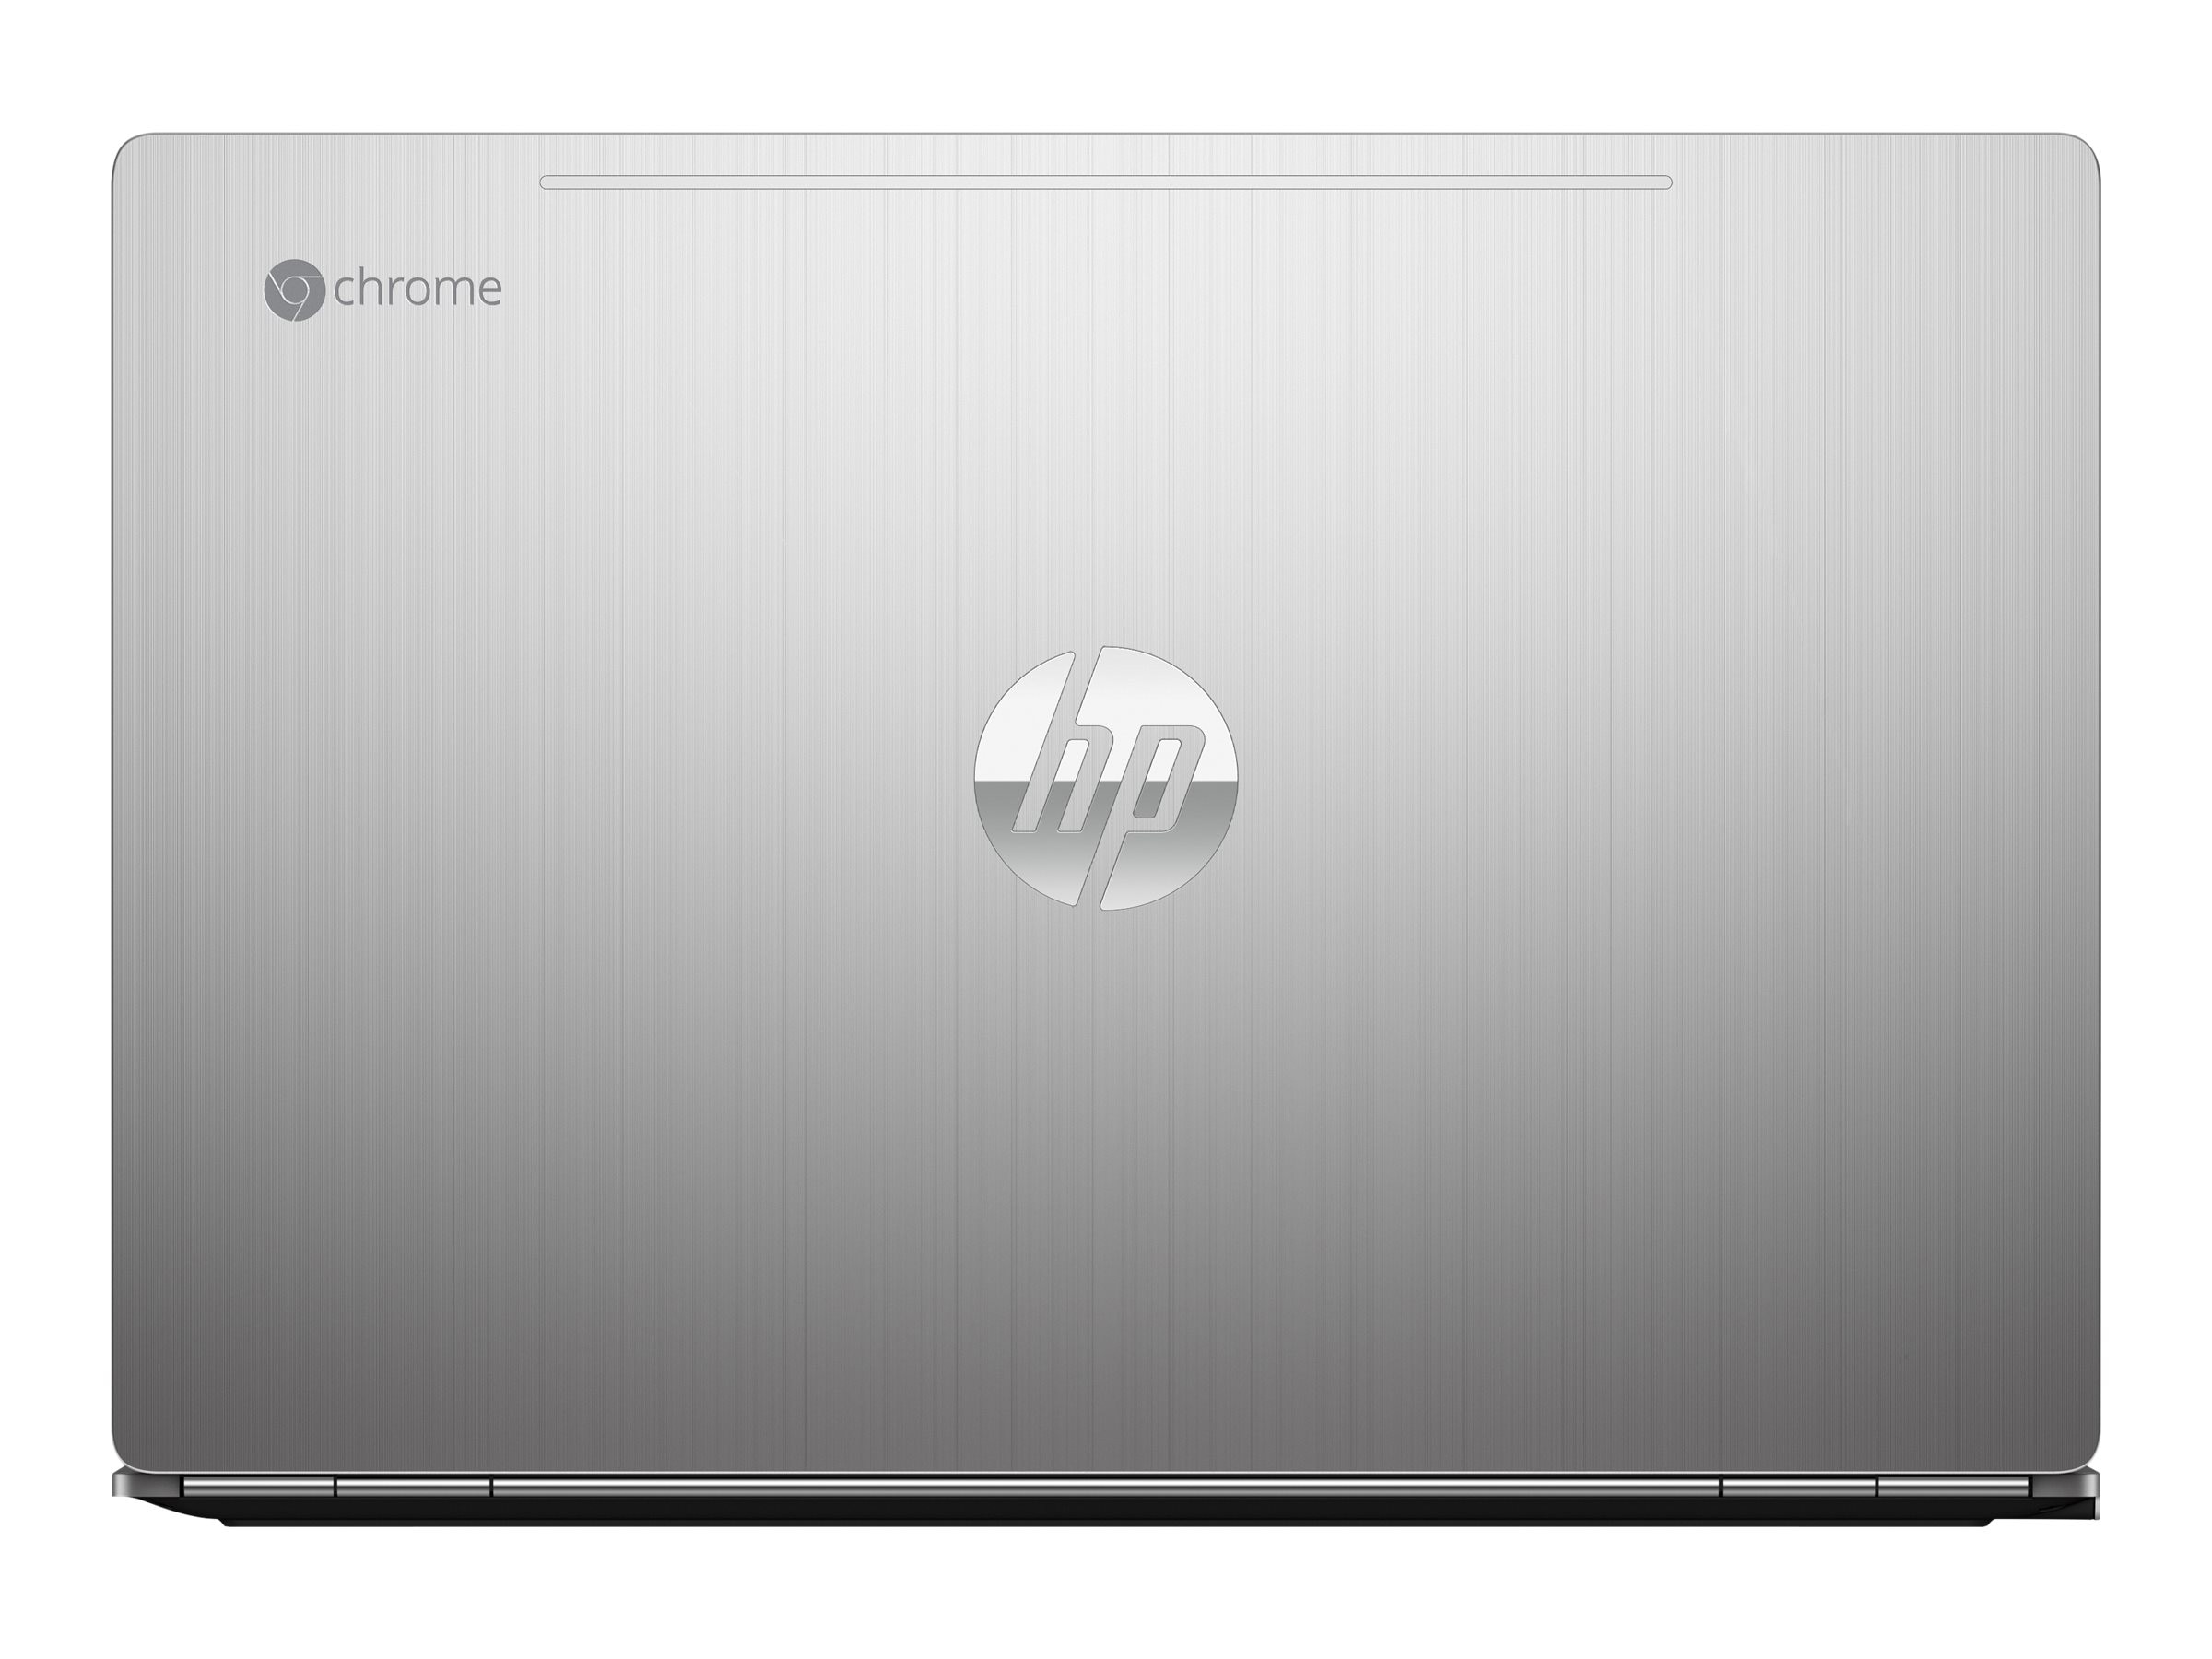 HP Chromebook 13 G1 1.1GHz Core m5 13.3in display, W0T01UT#ABA